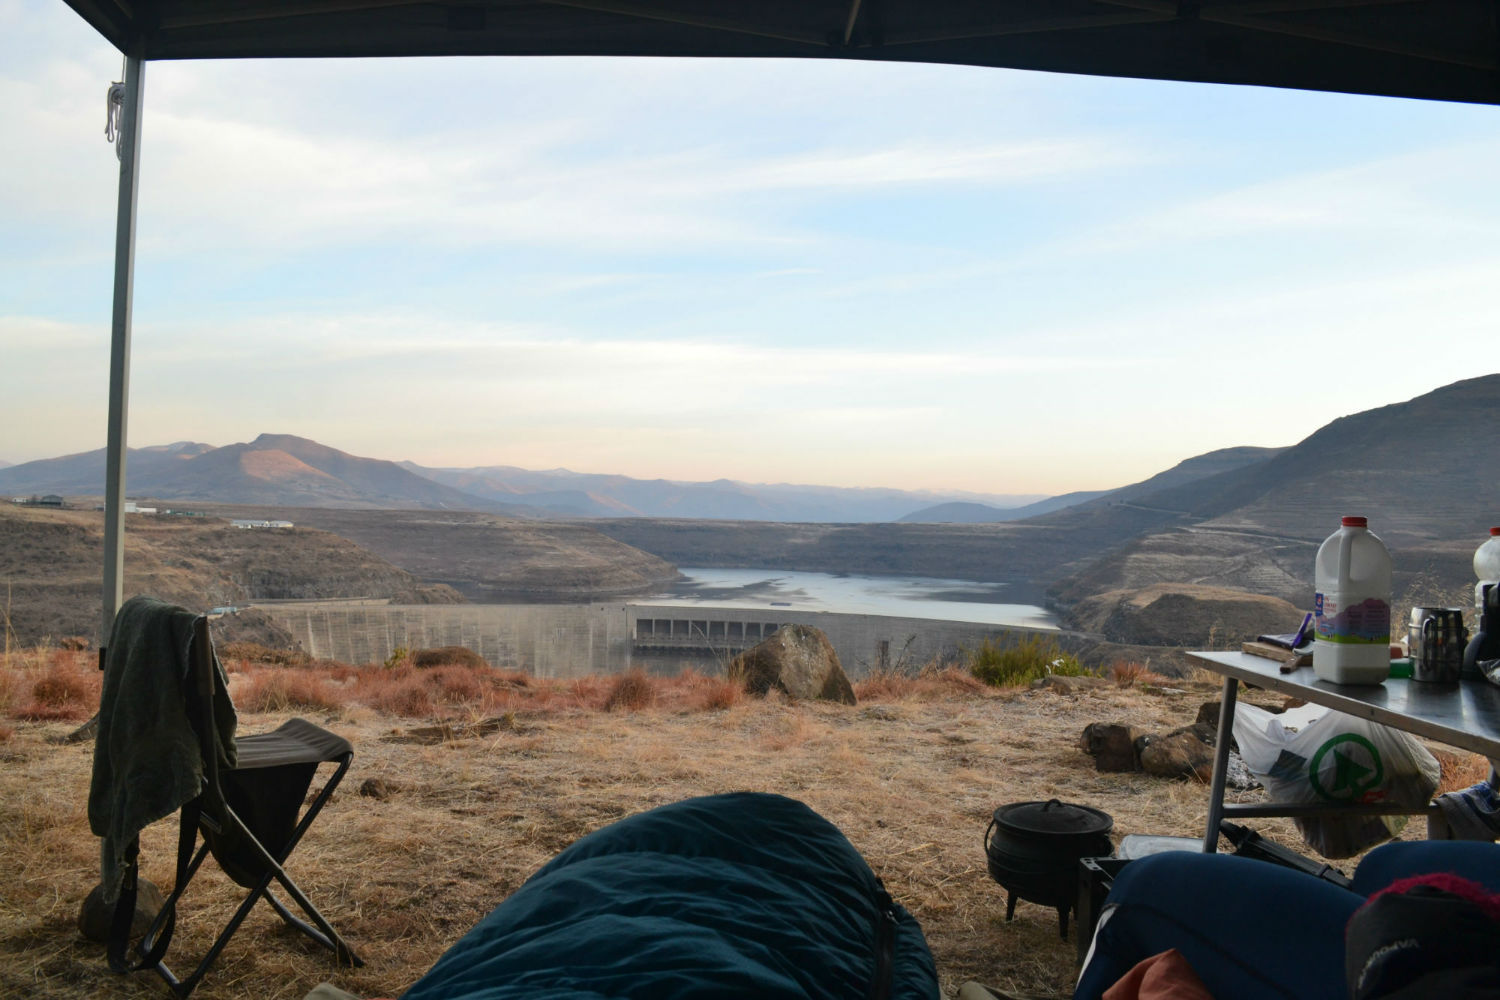 Campsite overlooking Katse Dam, Lesotho with South Africa Overland 4x4 Tours